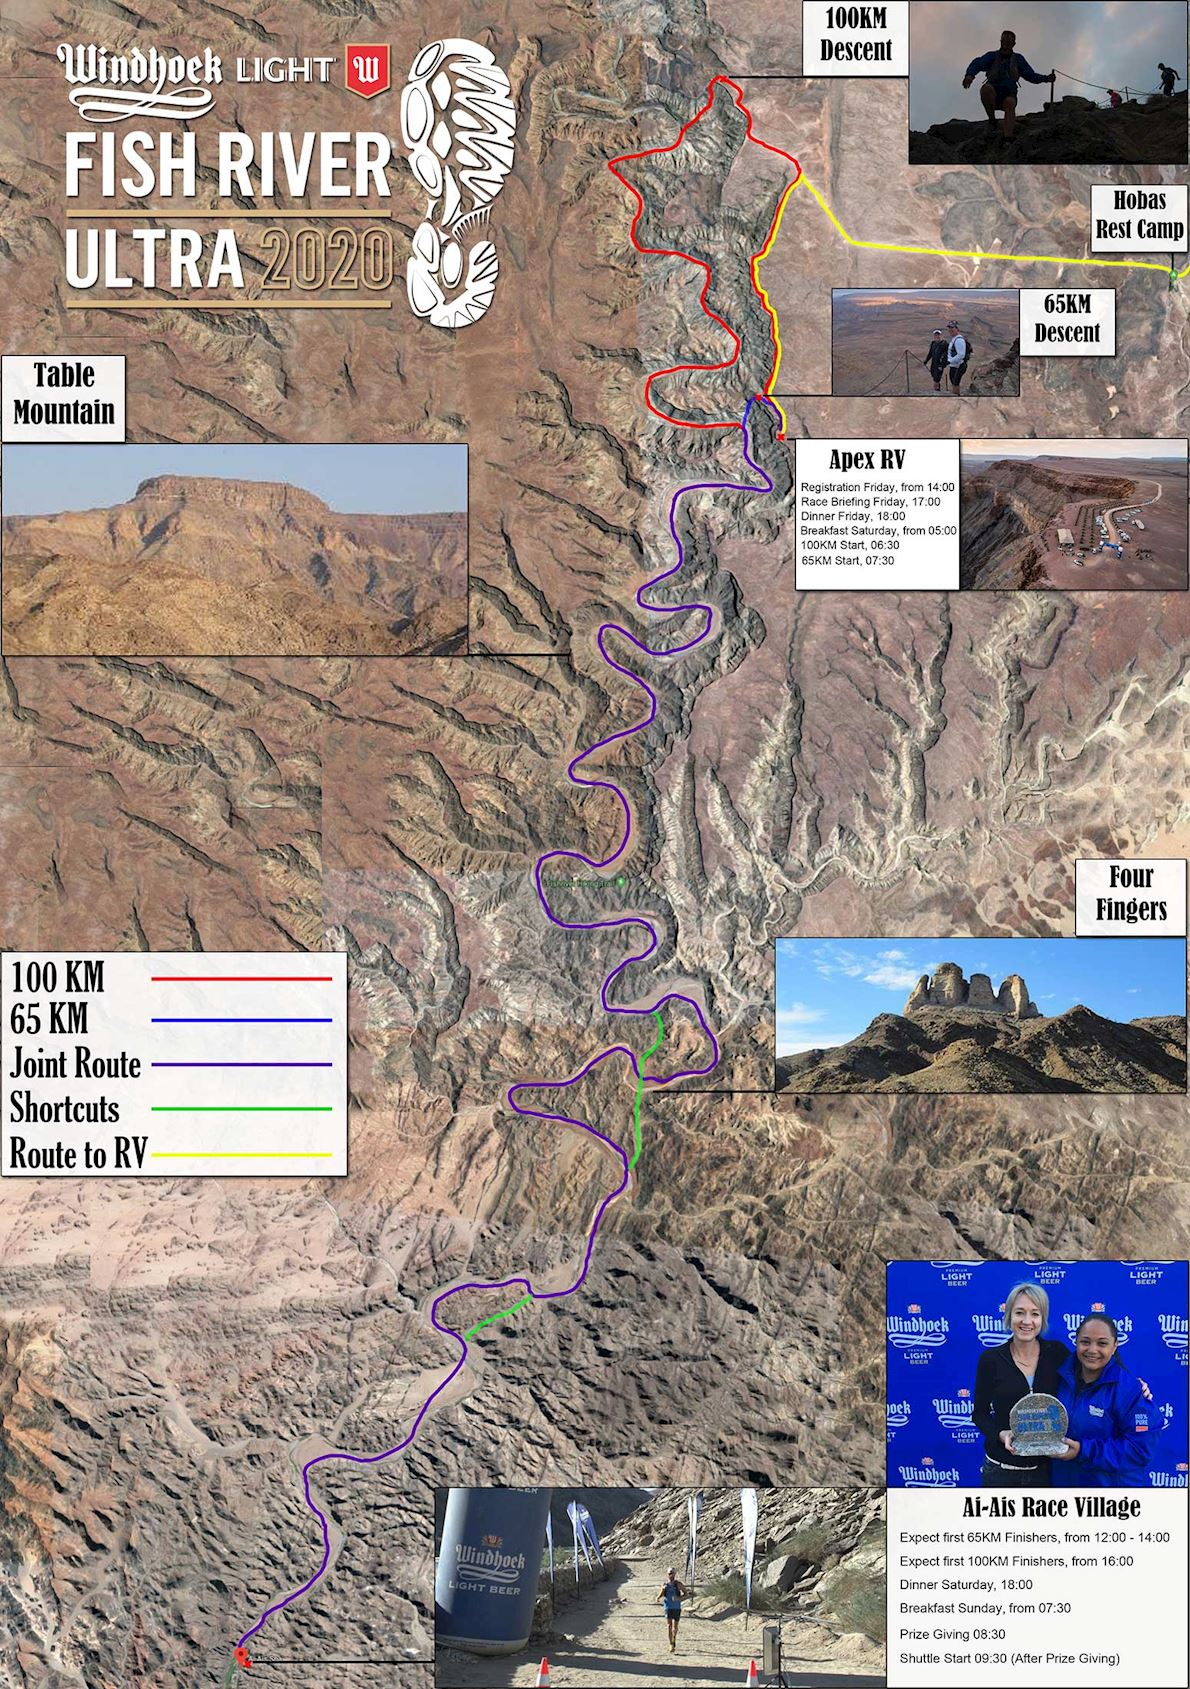 Windhoek Light Fish River Canyon Ultra 路线图